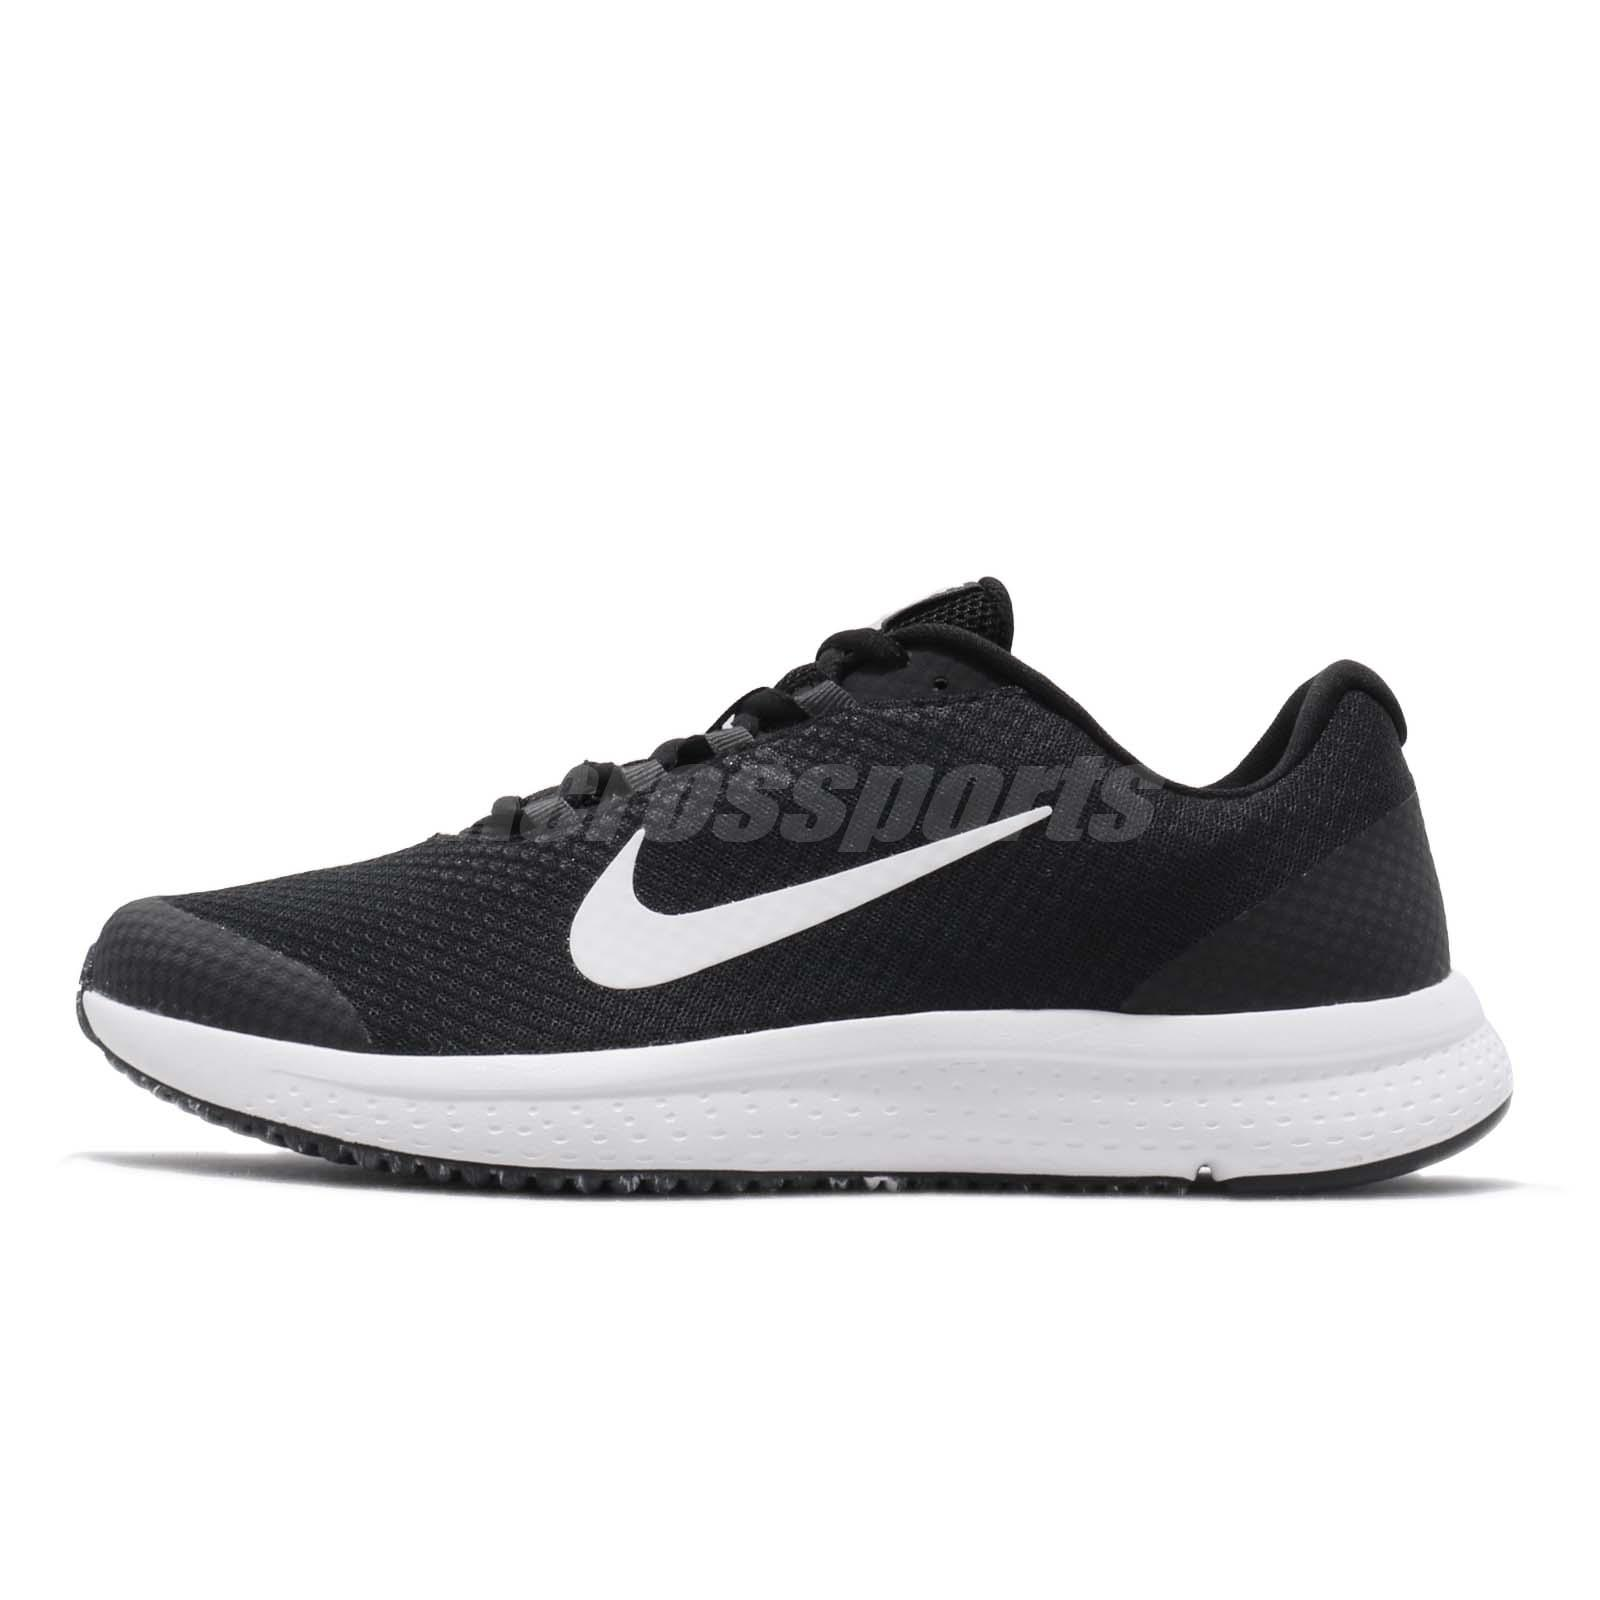 99ee3bc08be0a Nike Runallday Black White Mens Running Shoes Run All Day Runner 898464-019